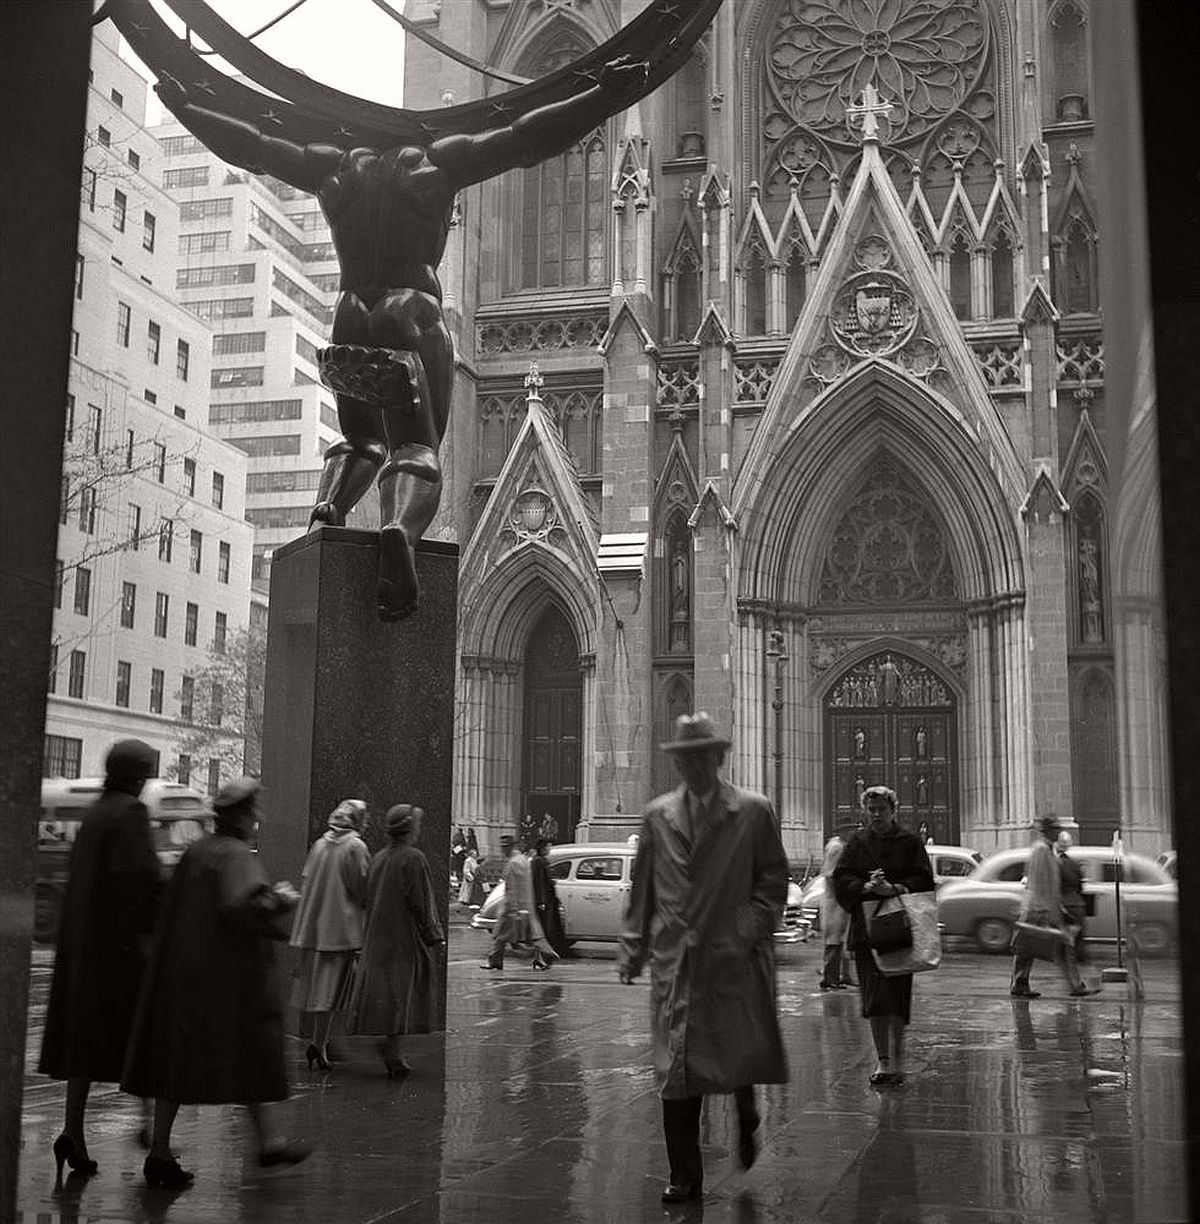 A rainy day across from St. Patrick's Cathedral.